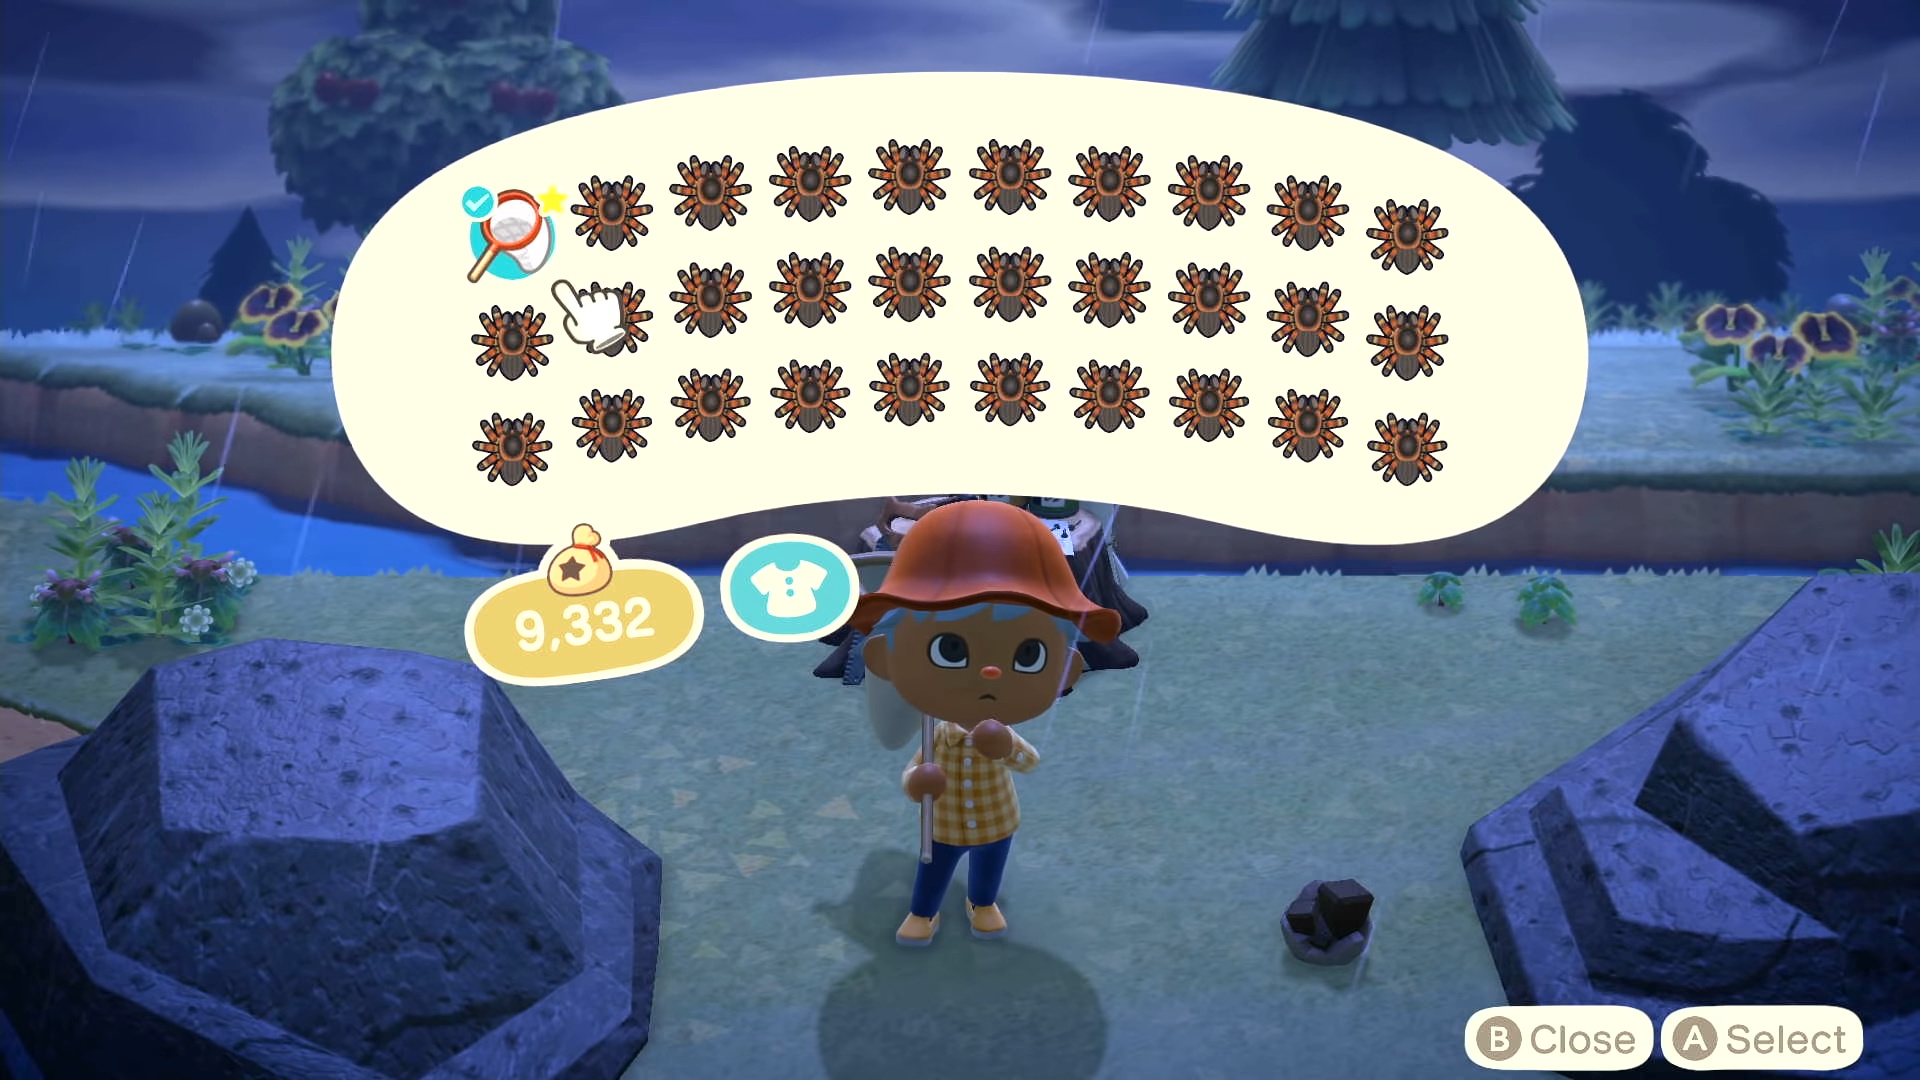 Dream Suite might be coming to Animal Crossing: New Horizons soon